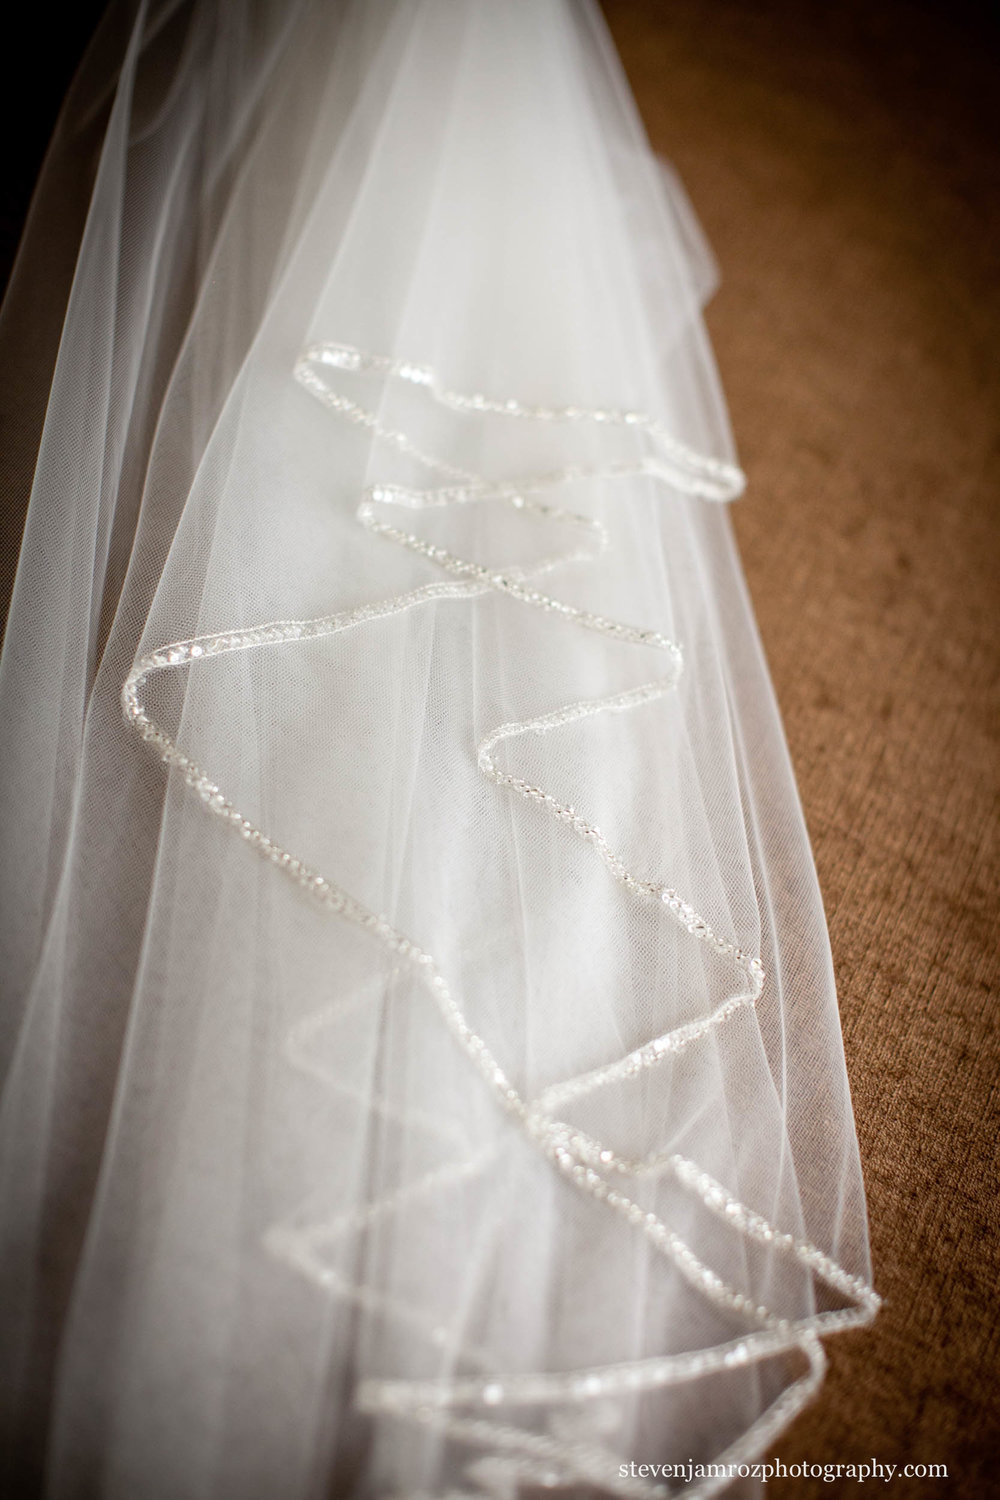 lace-veil-beautiful-wedding-nc-steven-jamroz-photography-0037.jpg